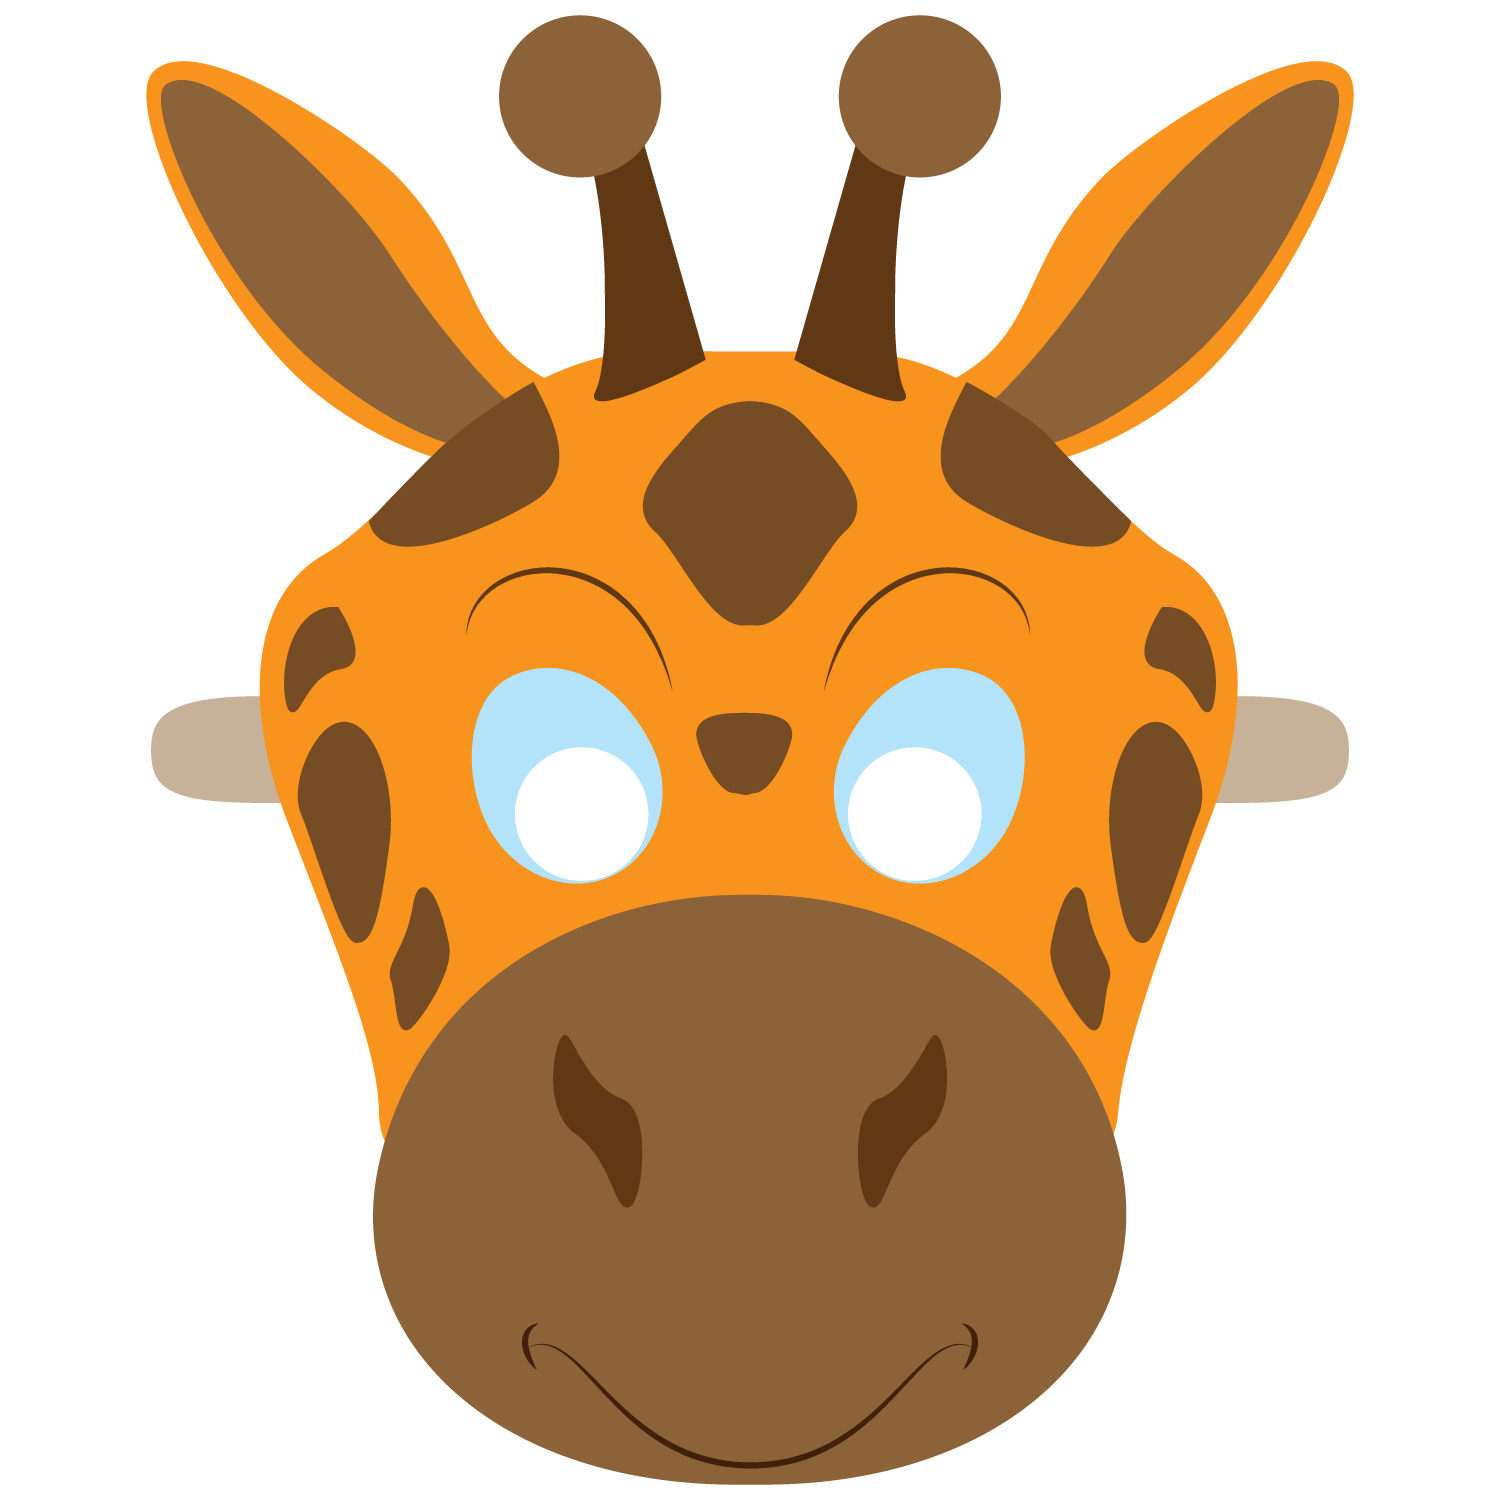 Giraffe Mask Template | Free Printable Papercraft Templates - Giraffe Mask Template Printable Free